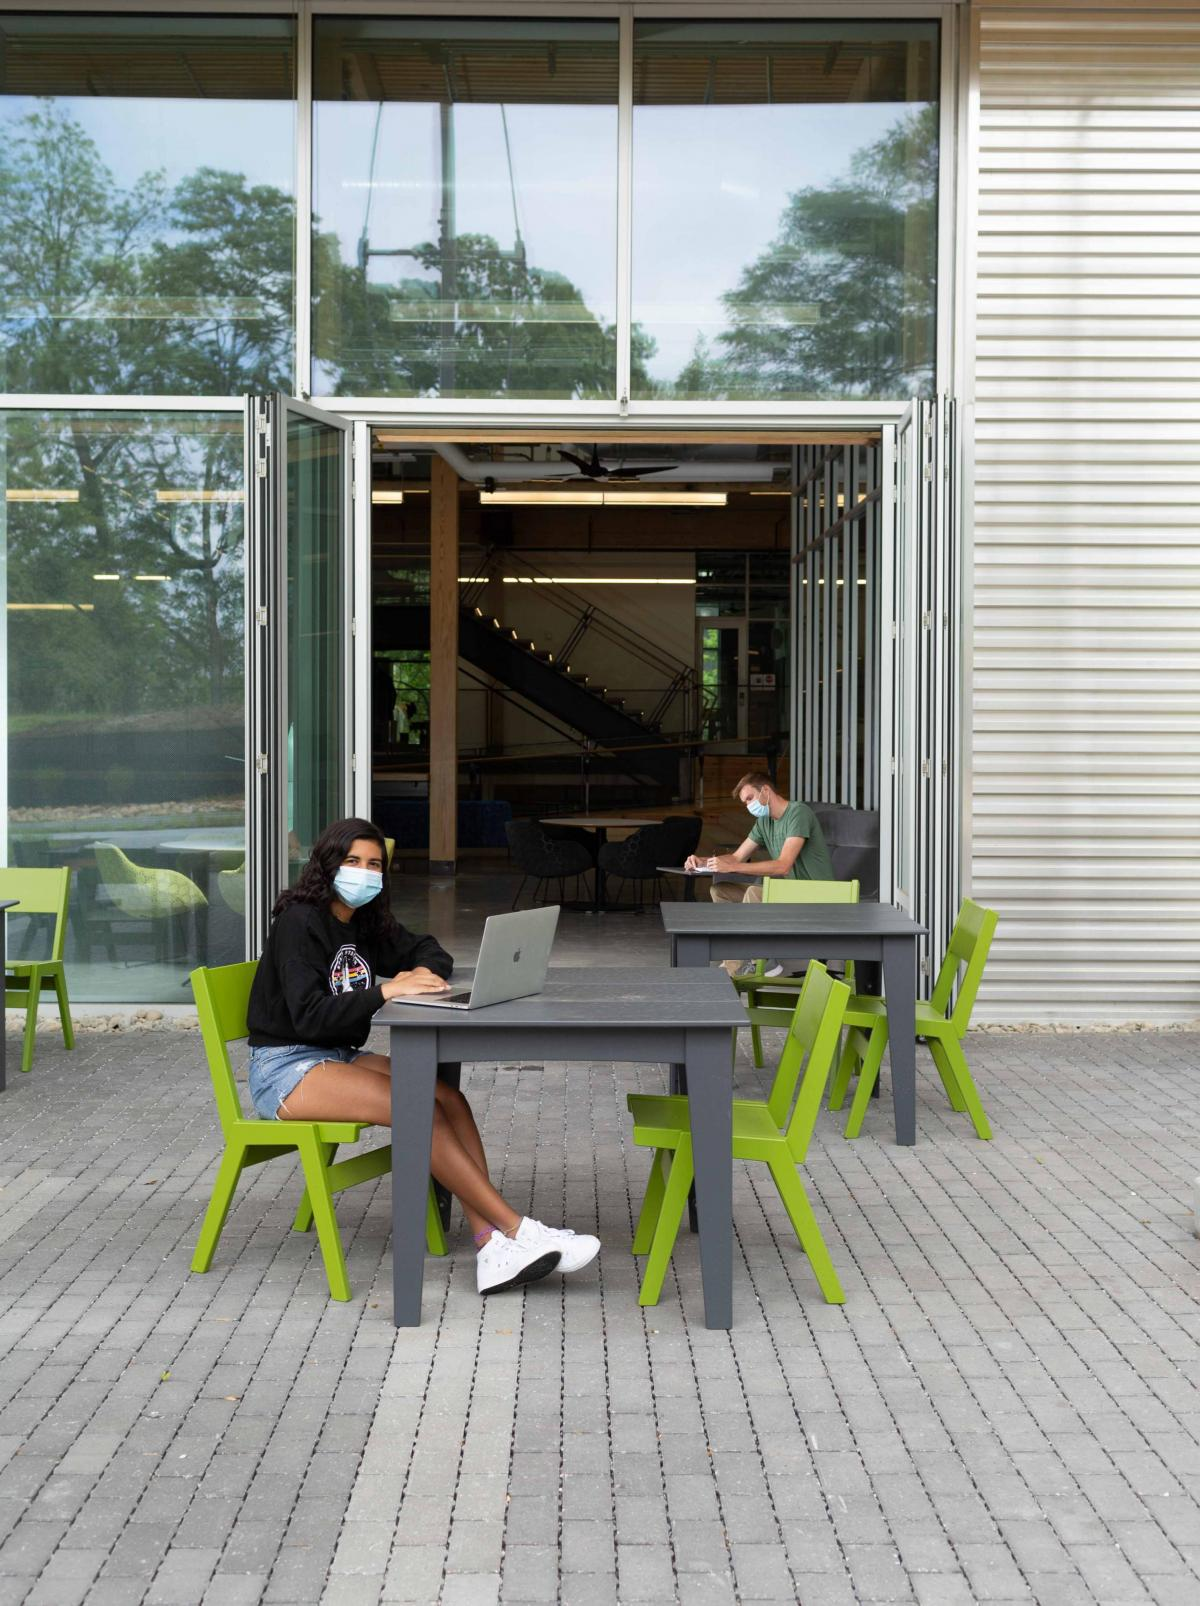 Students socially distant at outside seating